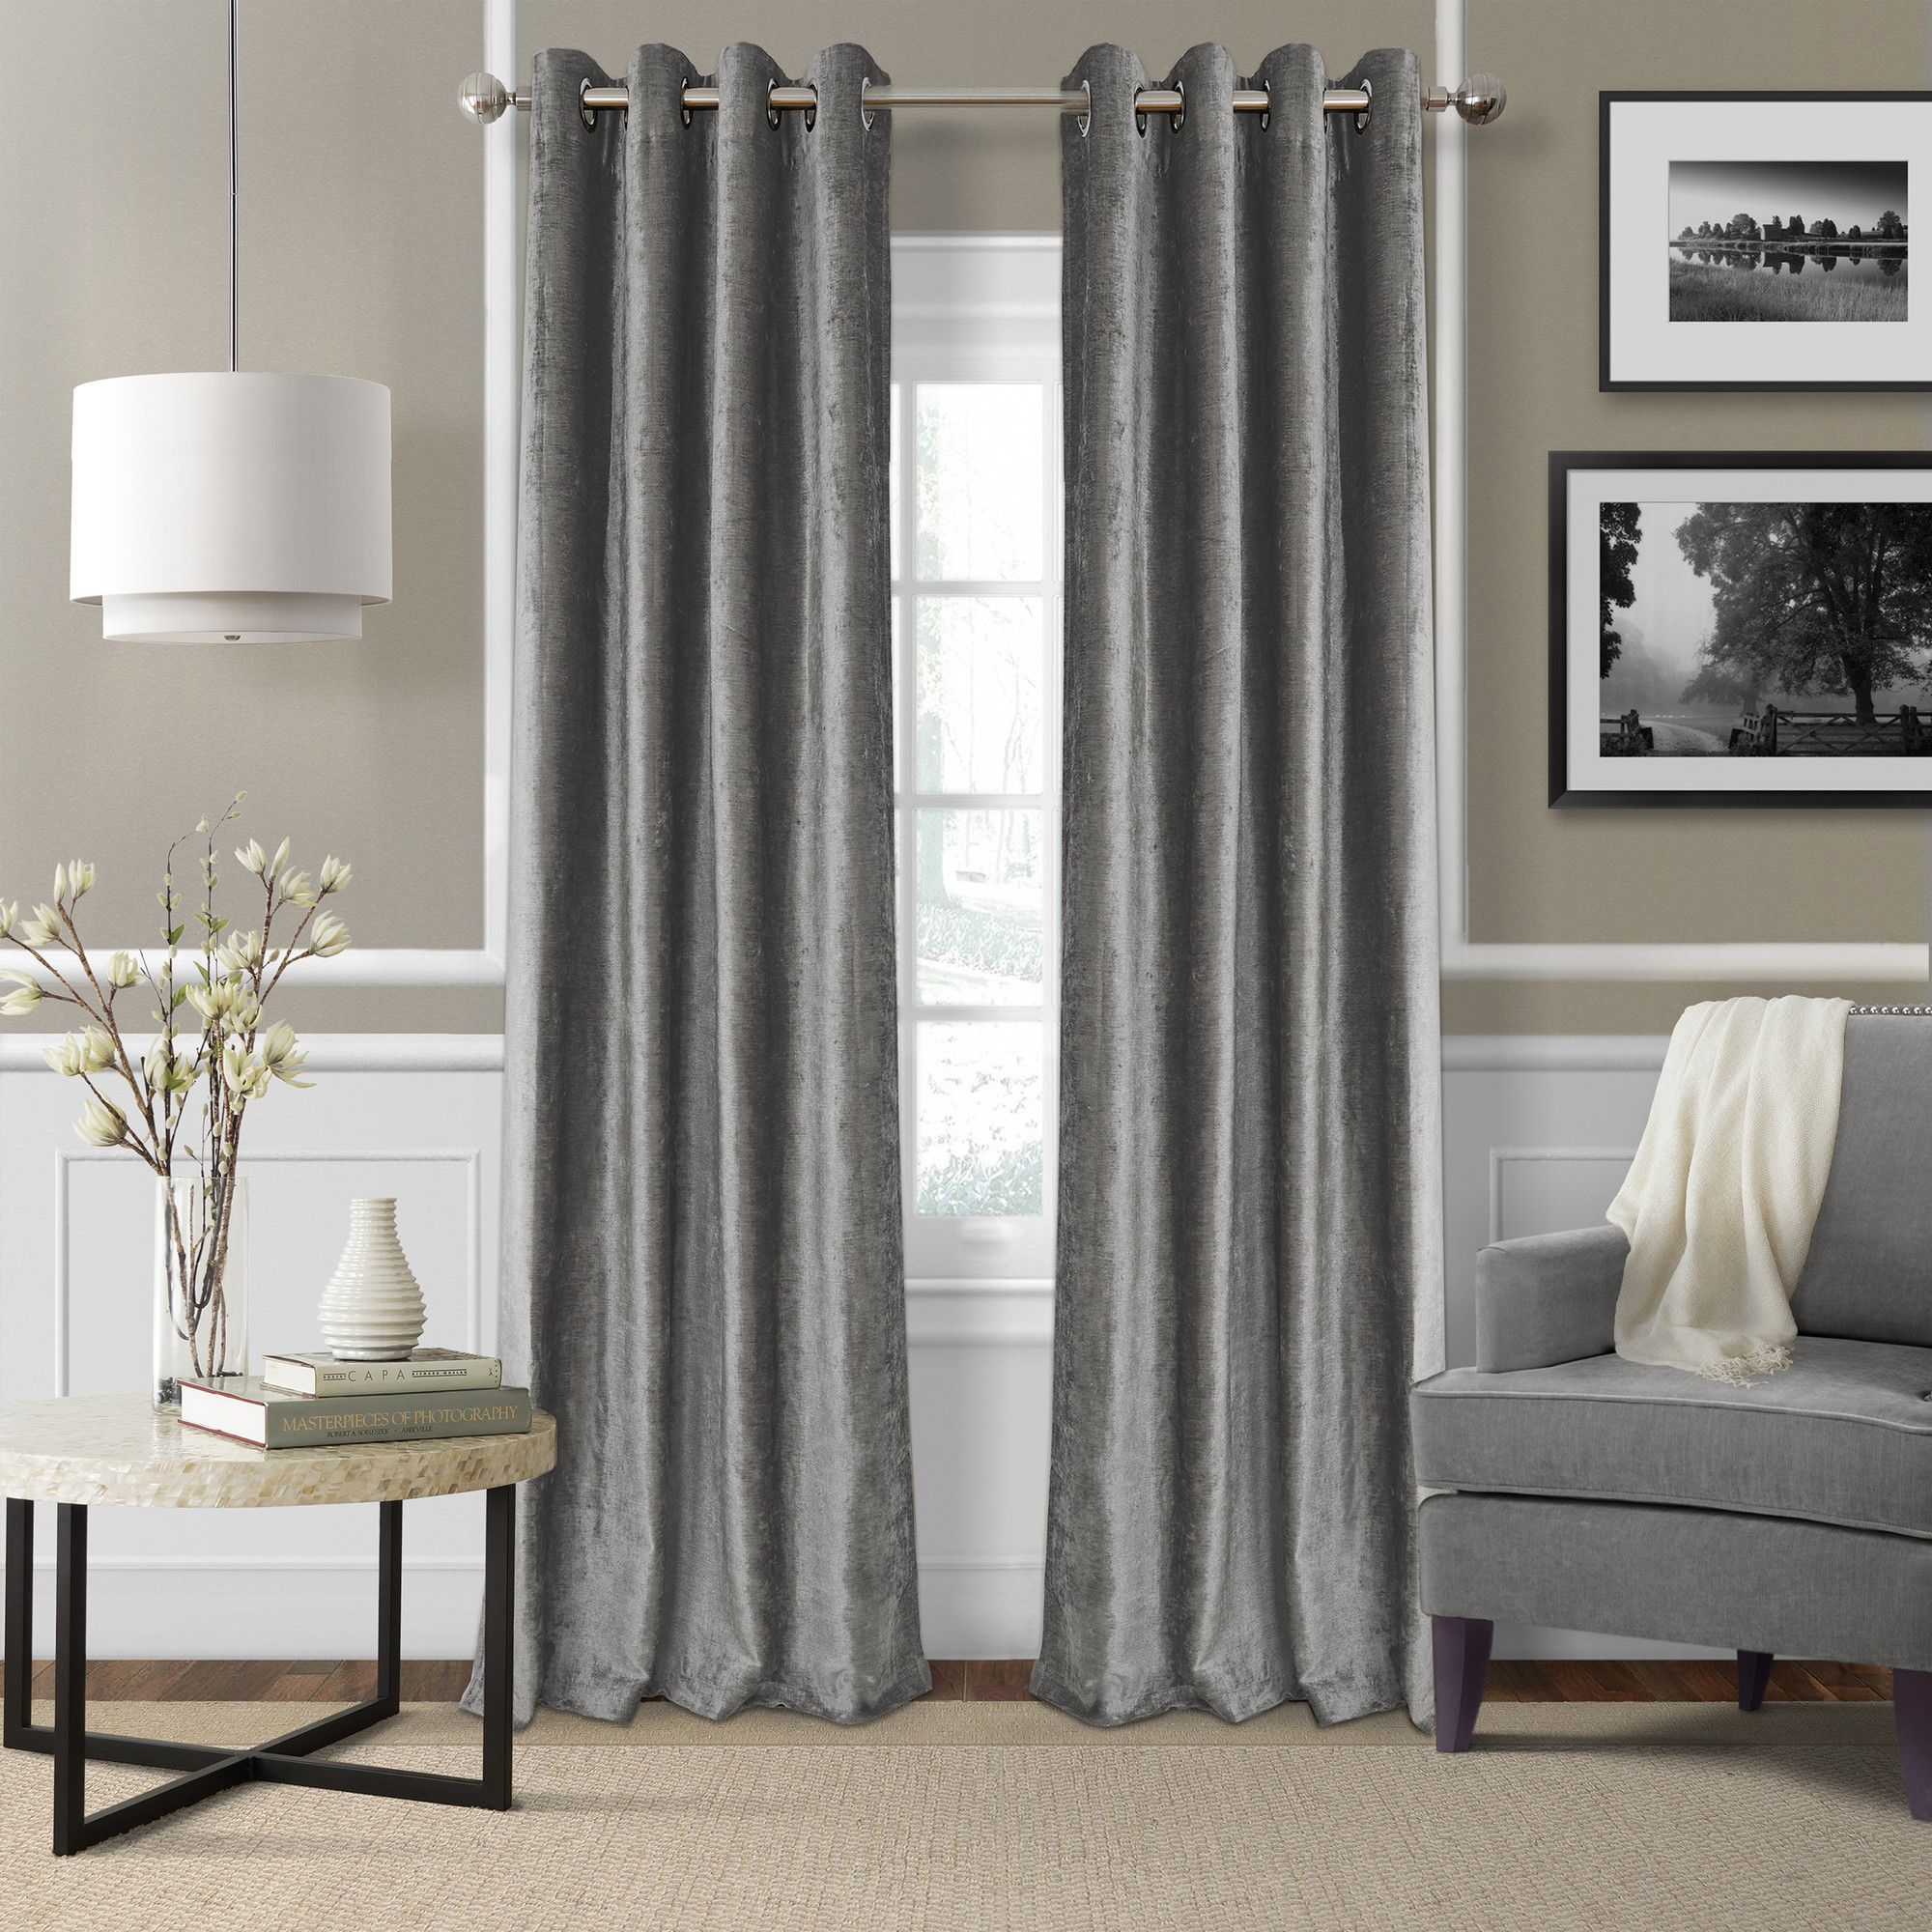 Victoria velvet single curtain panel products pinterest products